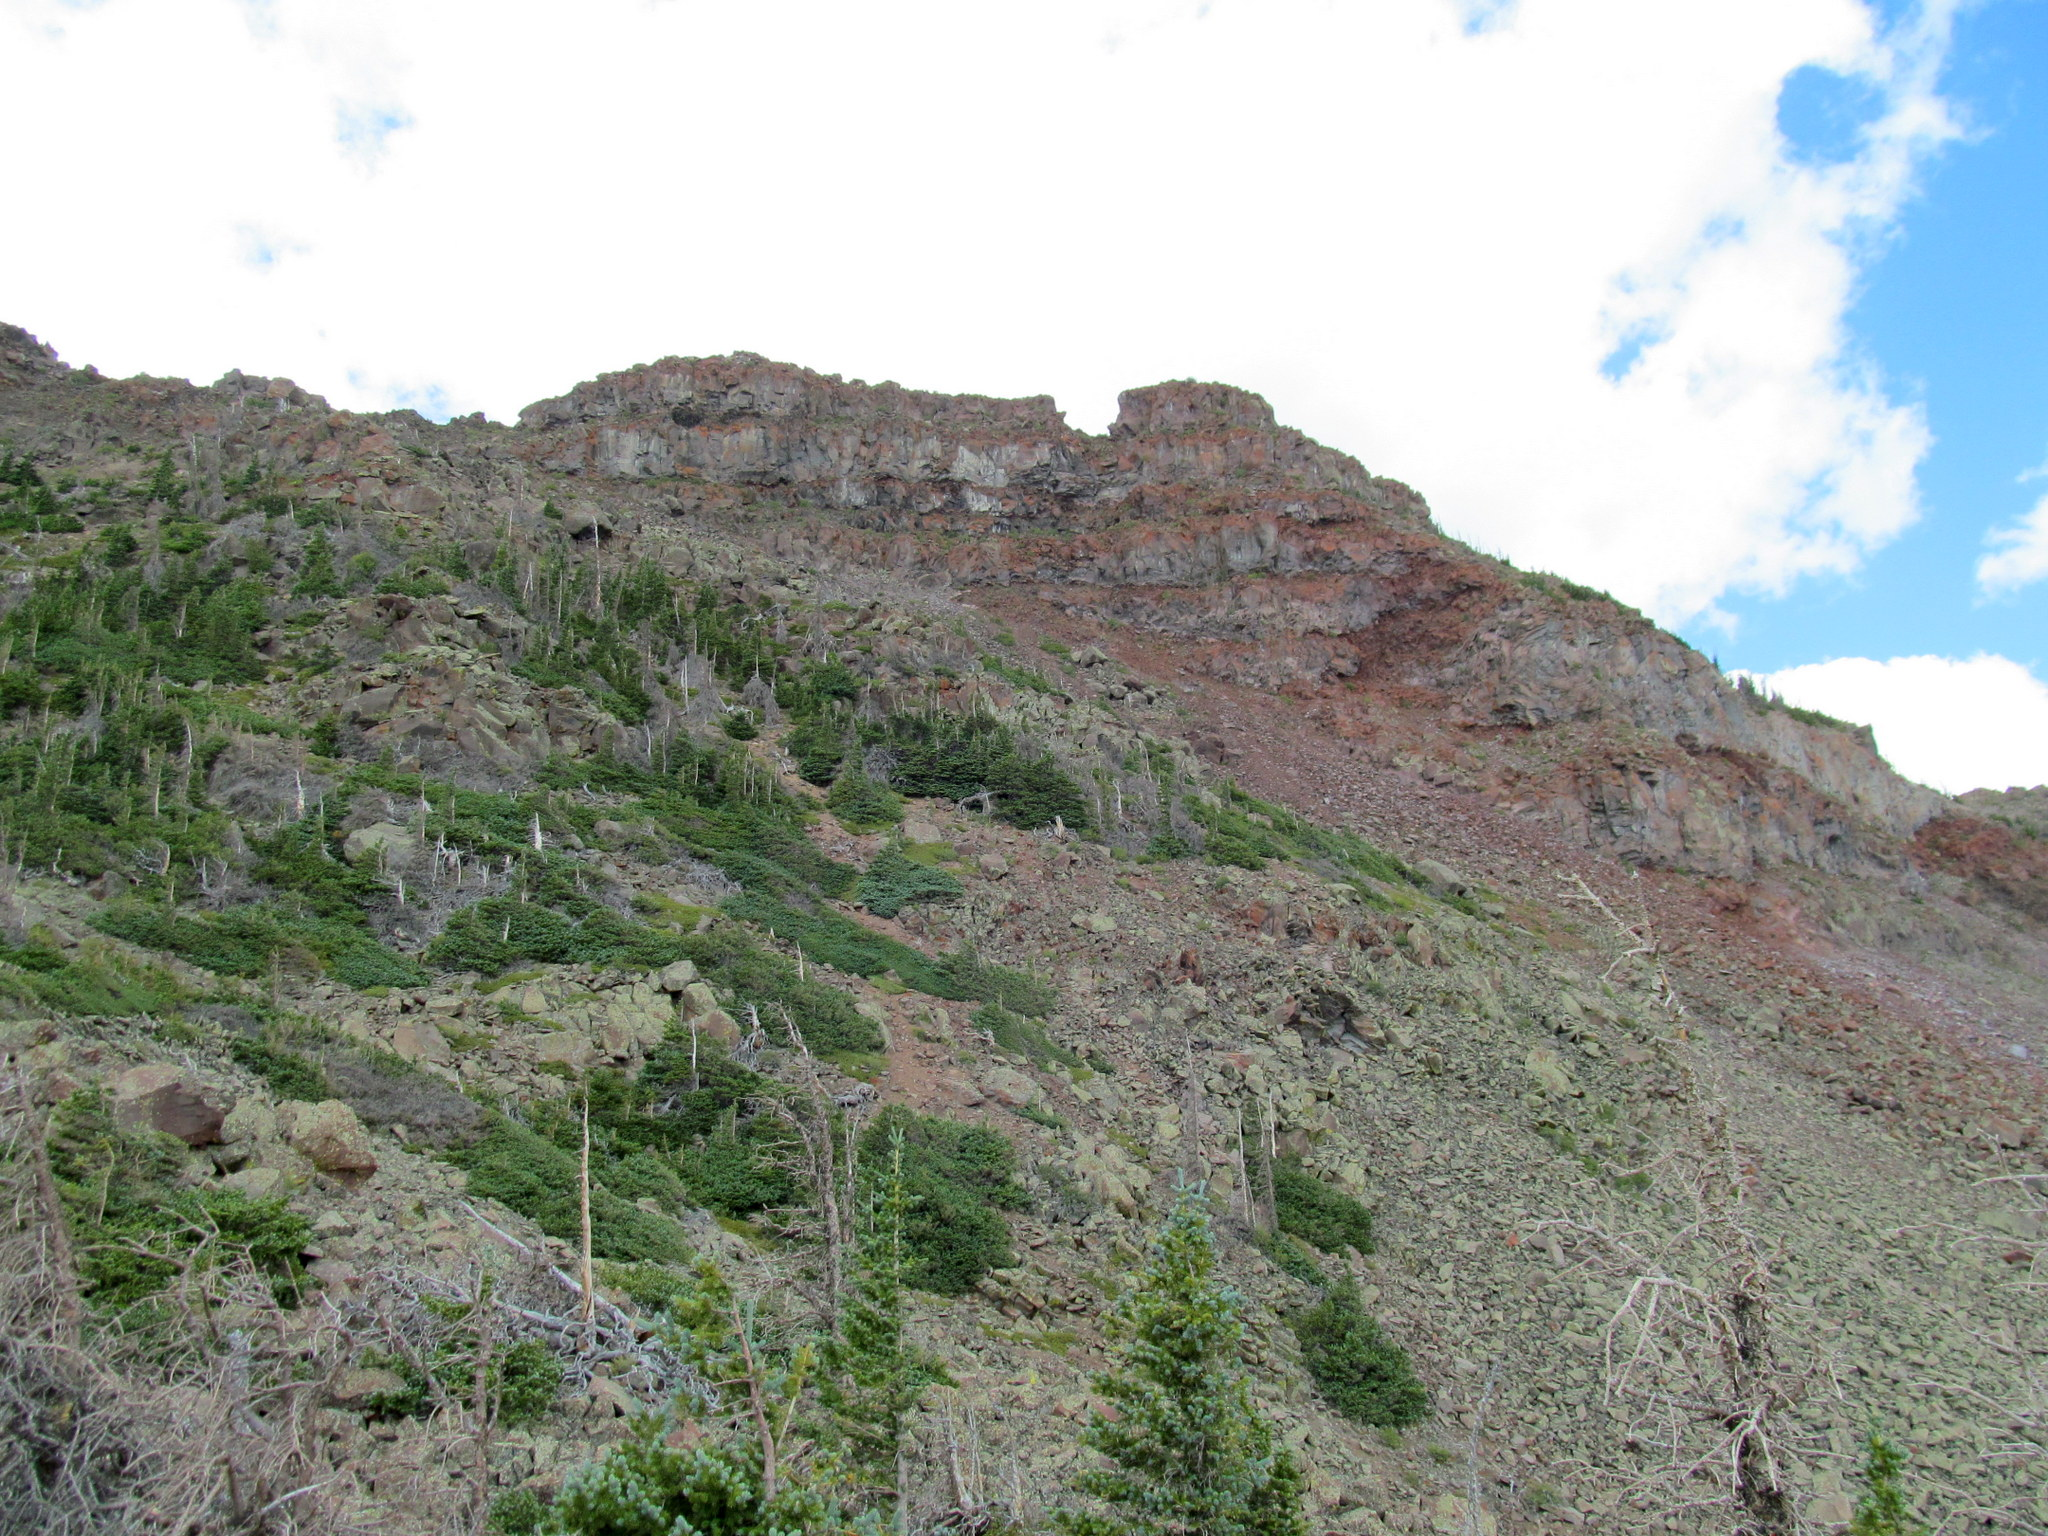 Photo: Mount Marvine summit on the right